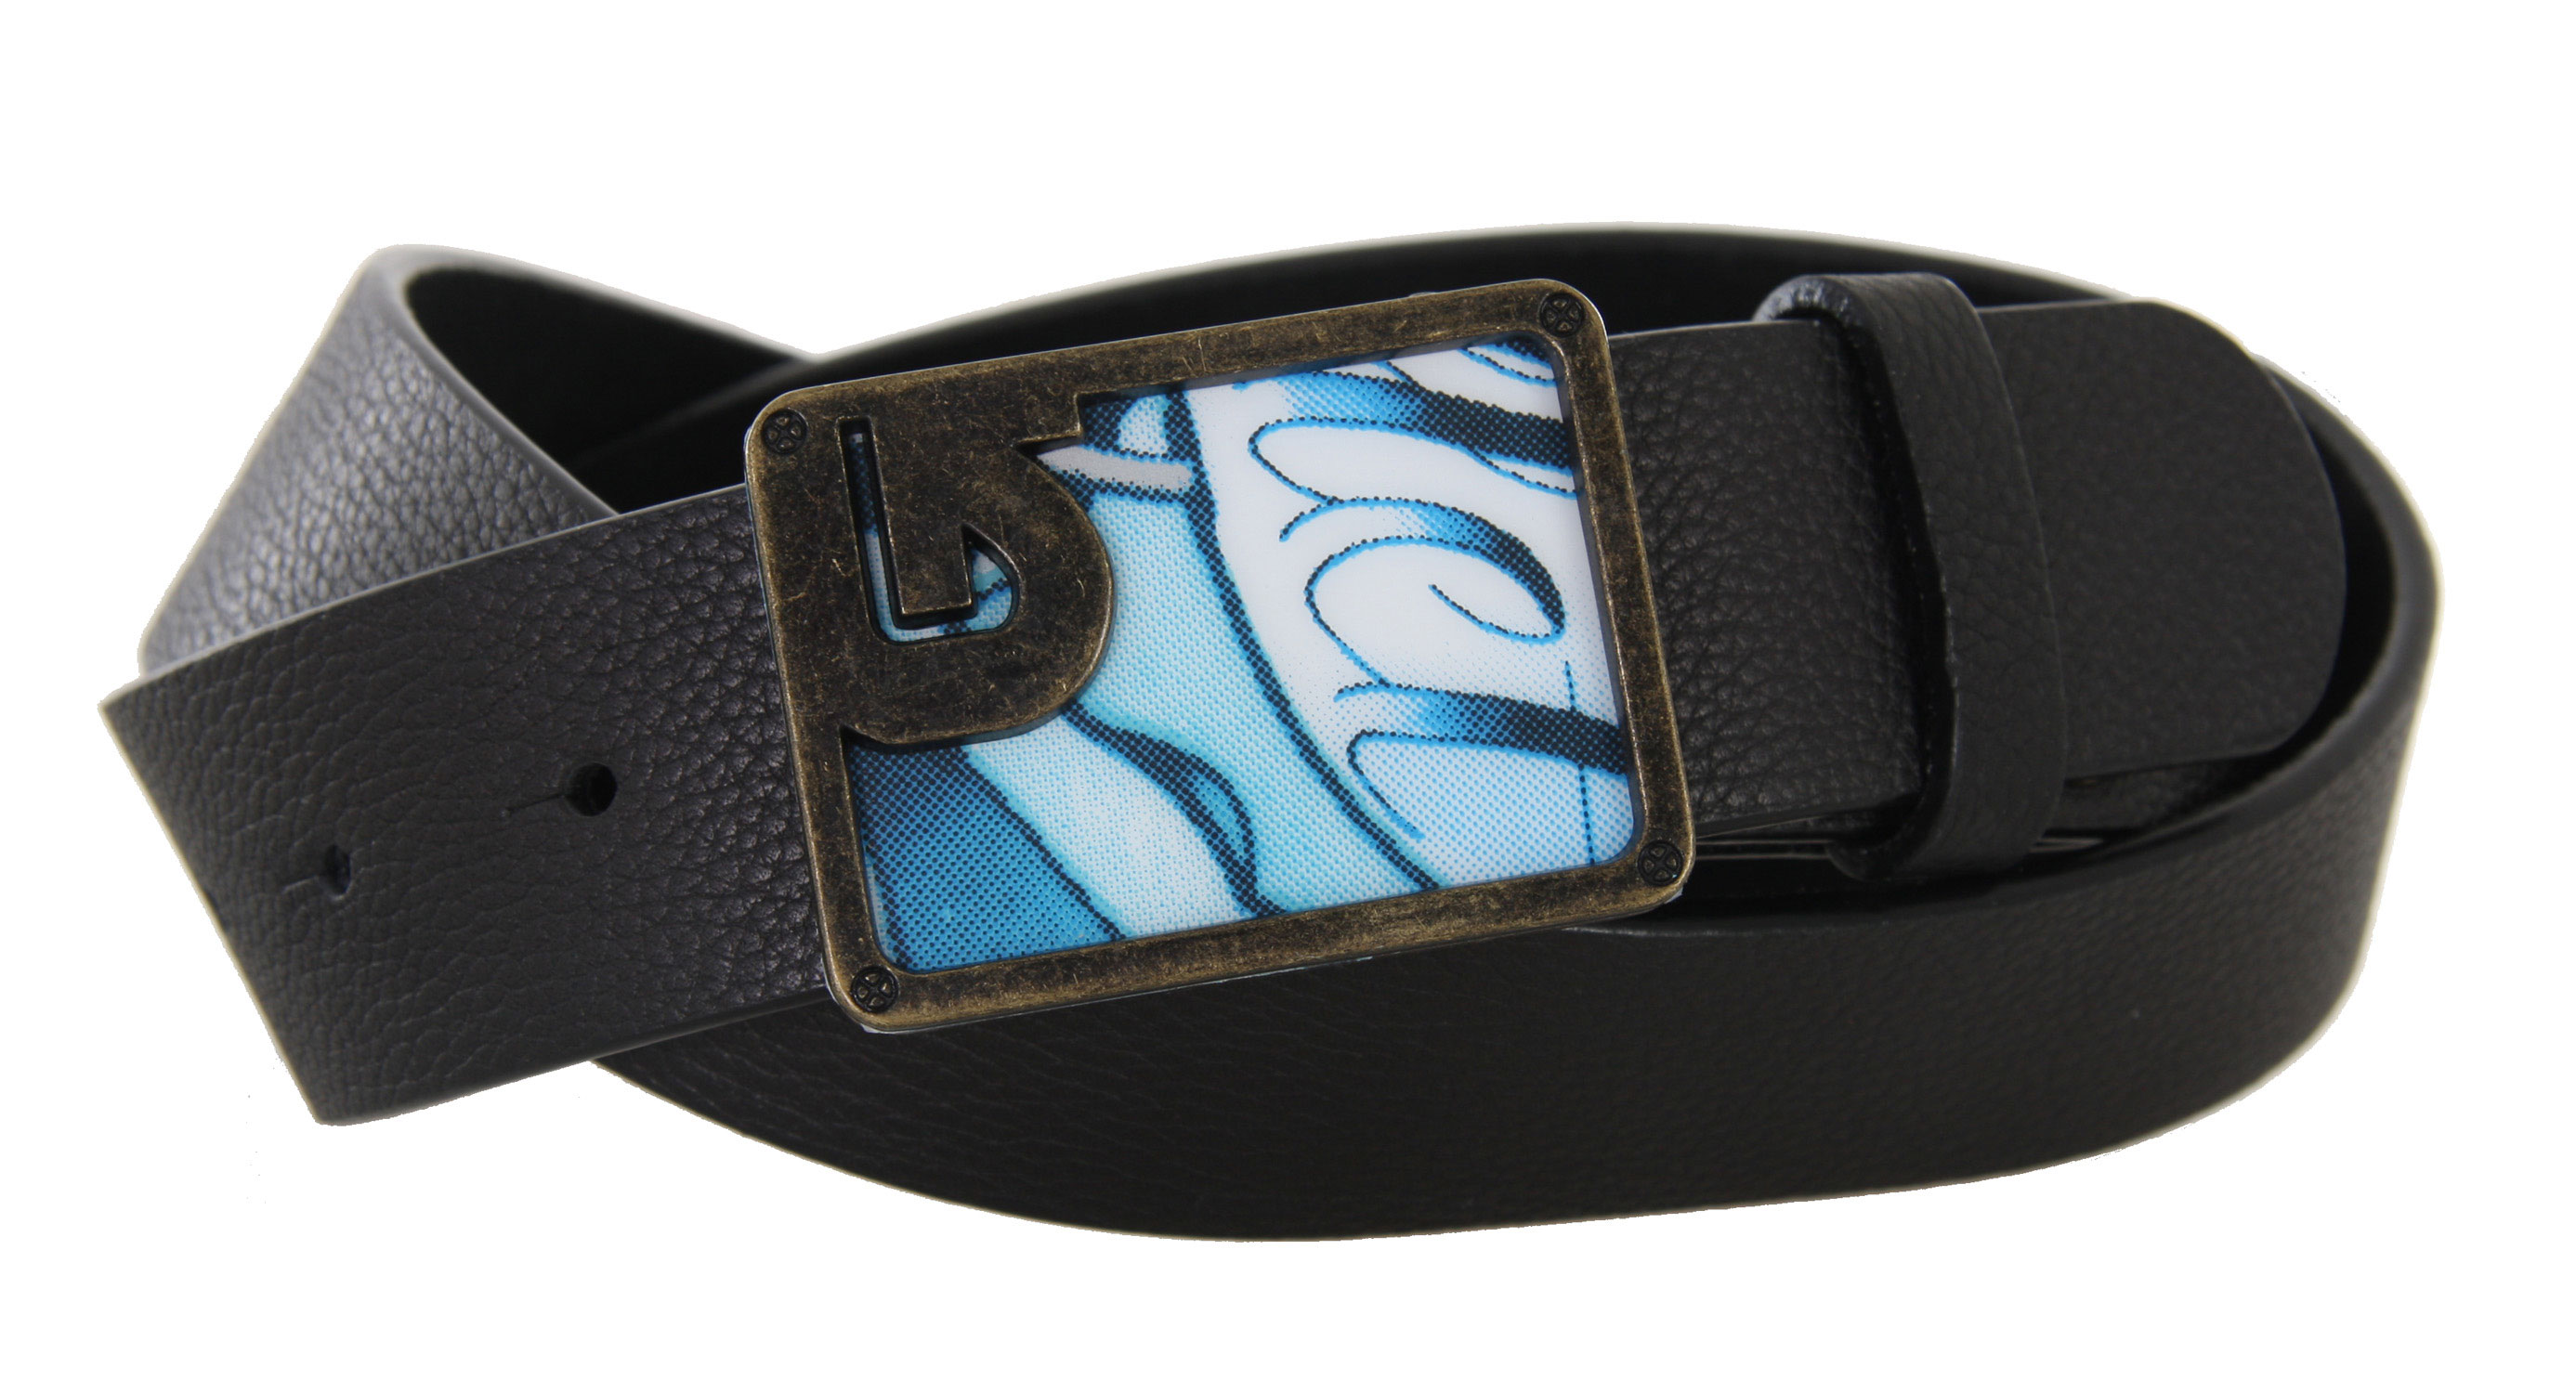 Snowboard Remember the last time you were out on the slopes, and the guy whose outers just didn't work together? Everybody was looking at him, yeah ... but not because they were impressed with his performance. Nothing makes you look as stupid as trying to grab while grabbing your pants at the same time. With this tough leather belt from Burton's accessories line, you can make sure that's not going to happen to you. Things will stay airtight and where they're supposed to be. - $26.57